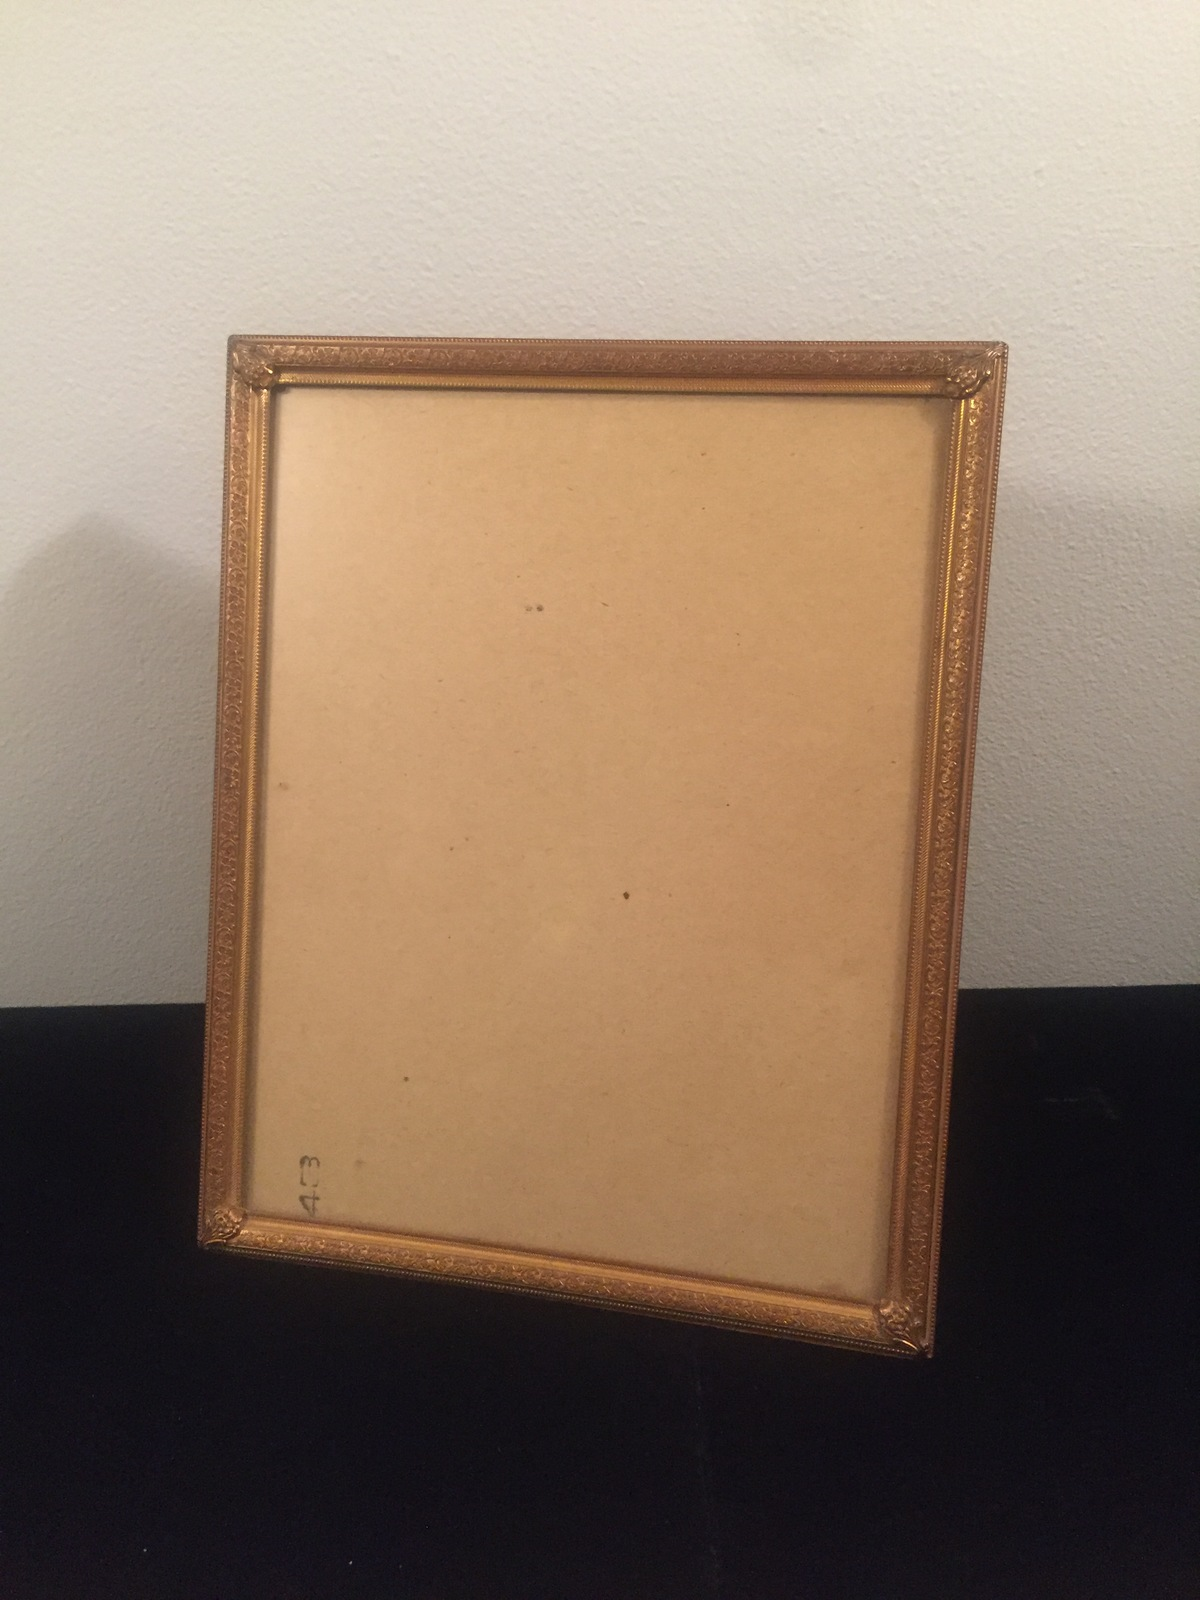 "Vintage 40s gold ornate 8"" x 10"" frame with easel back"